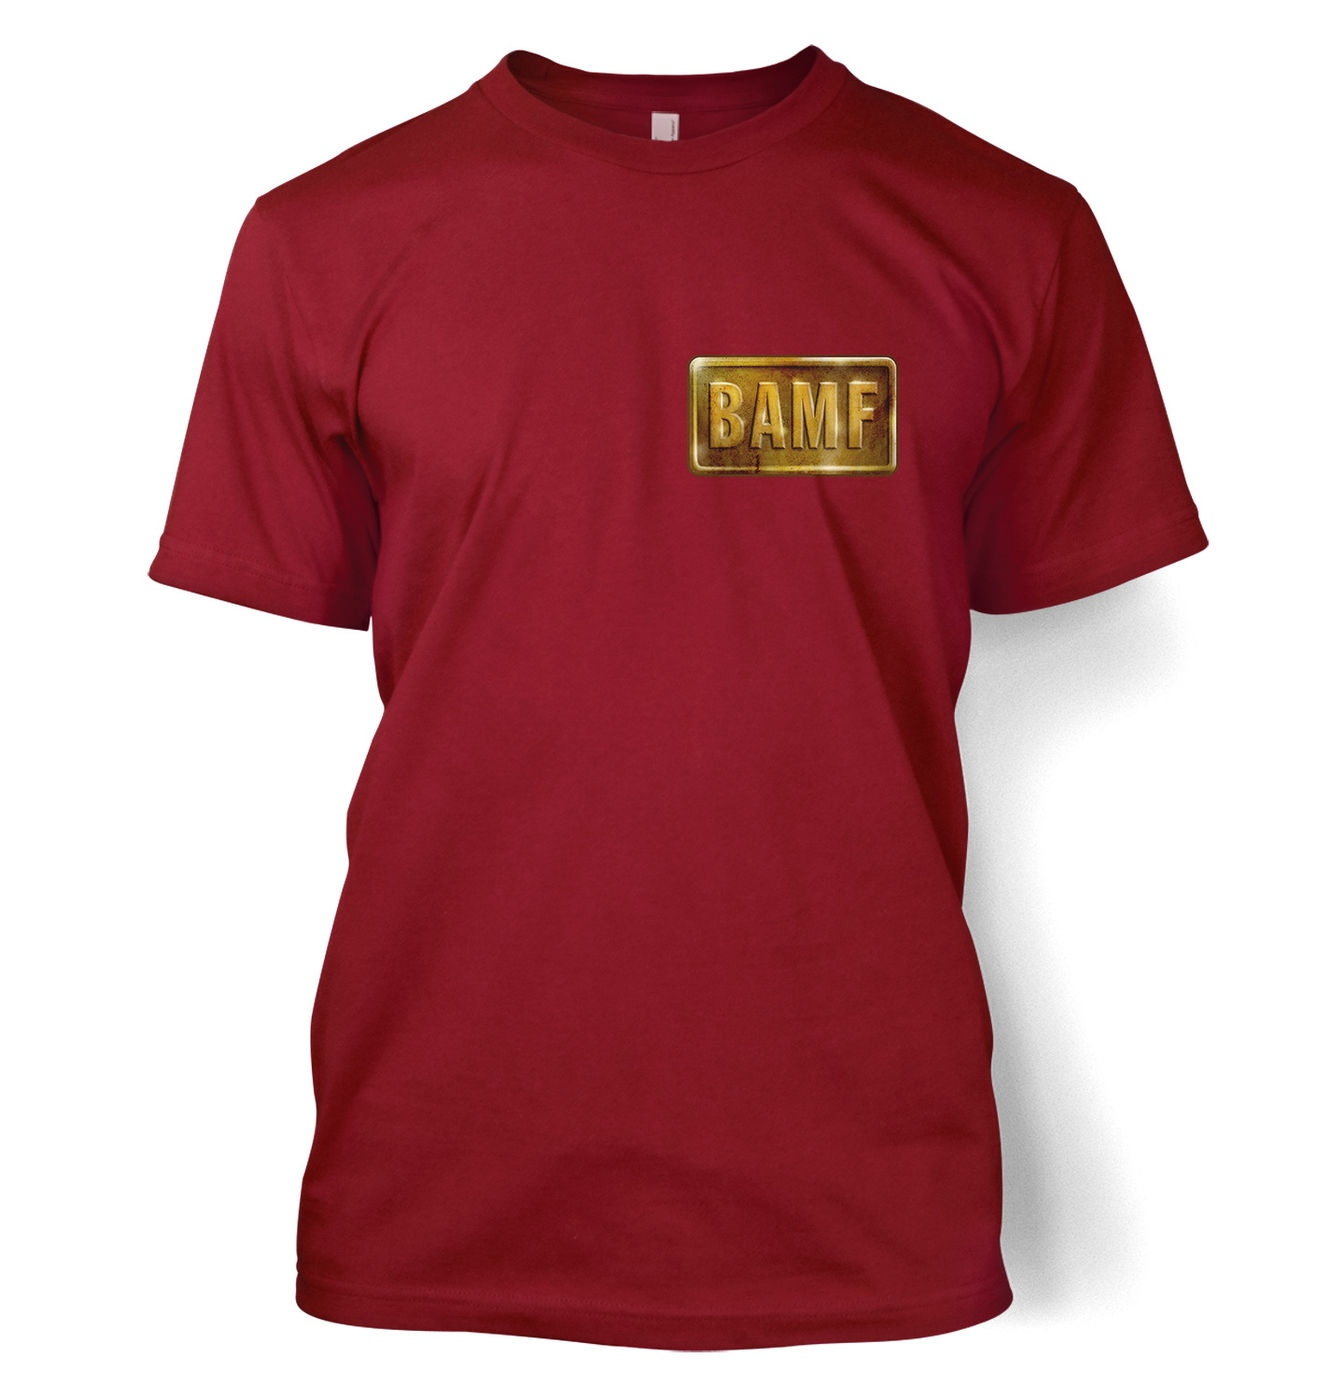 BAMF McCree Badge t-shirt by Something Geeky